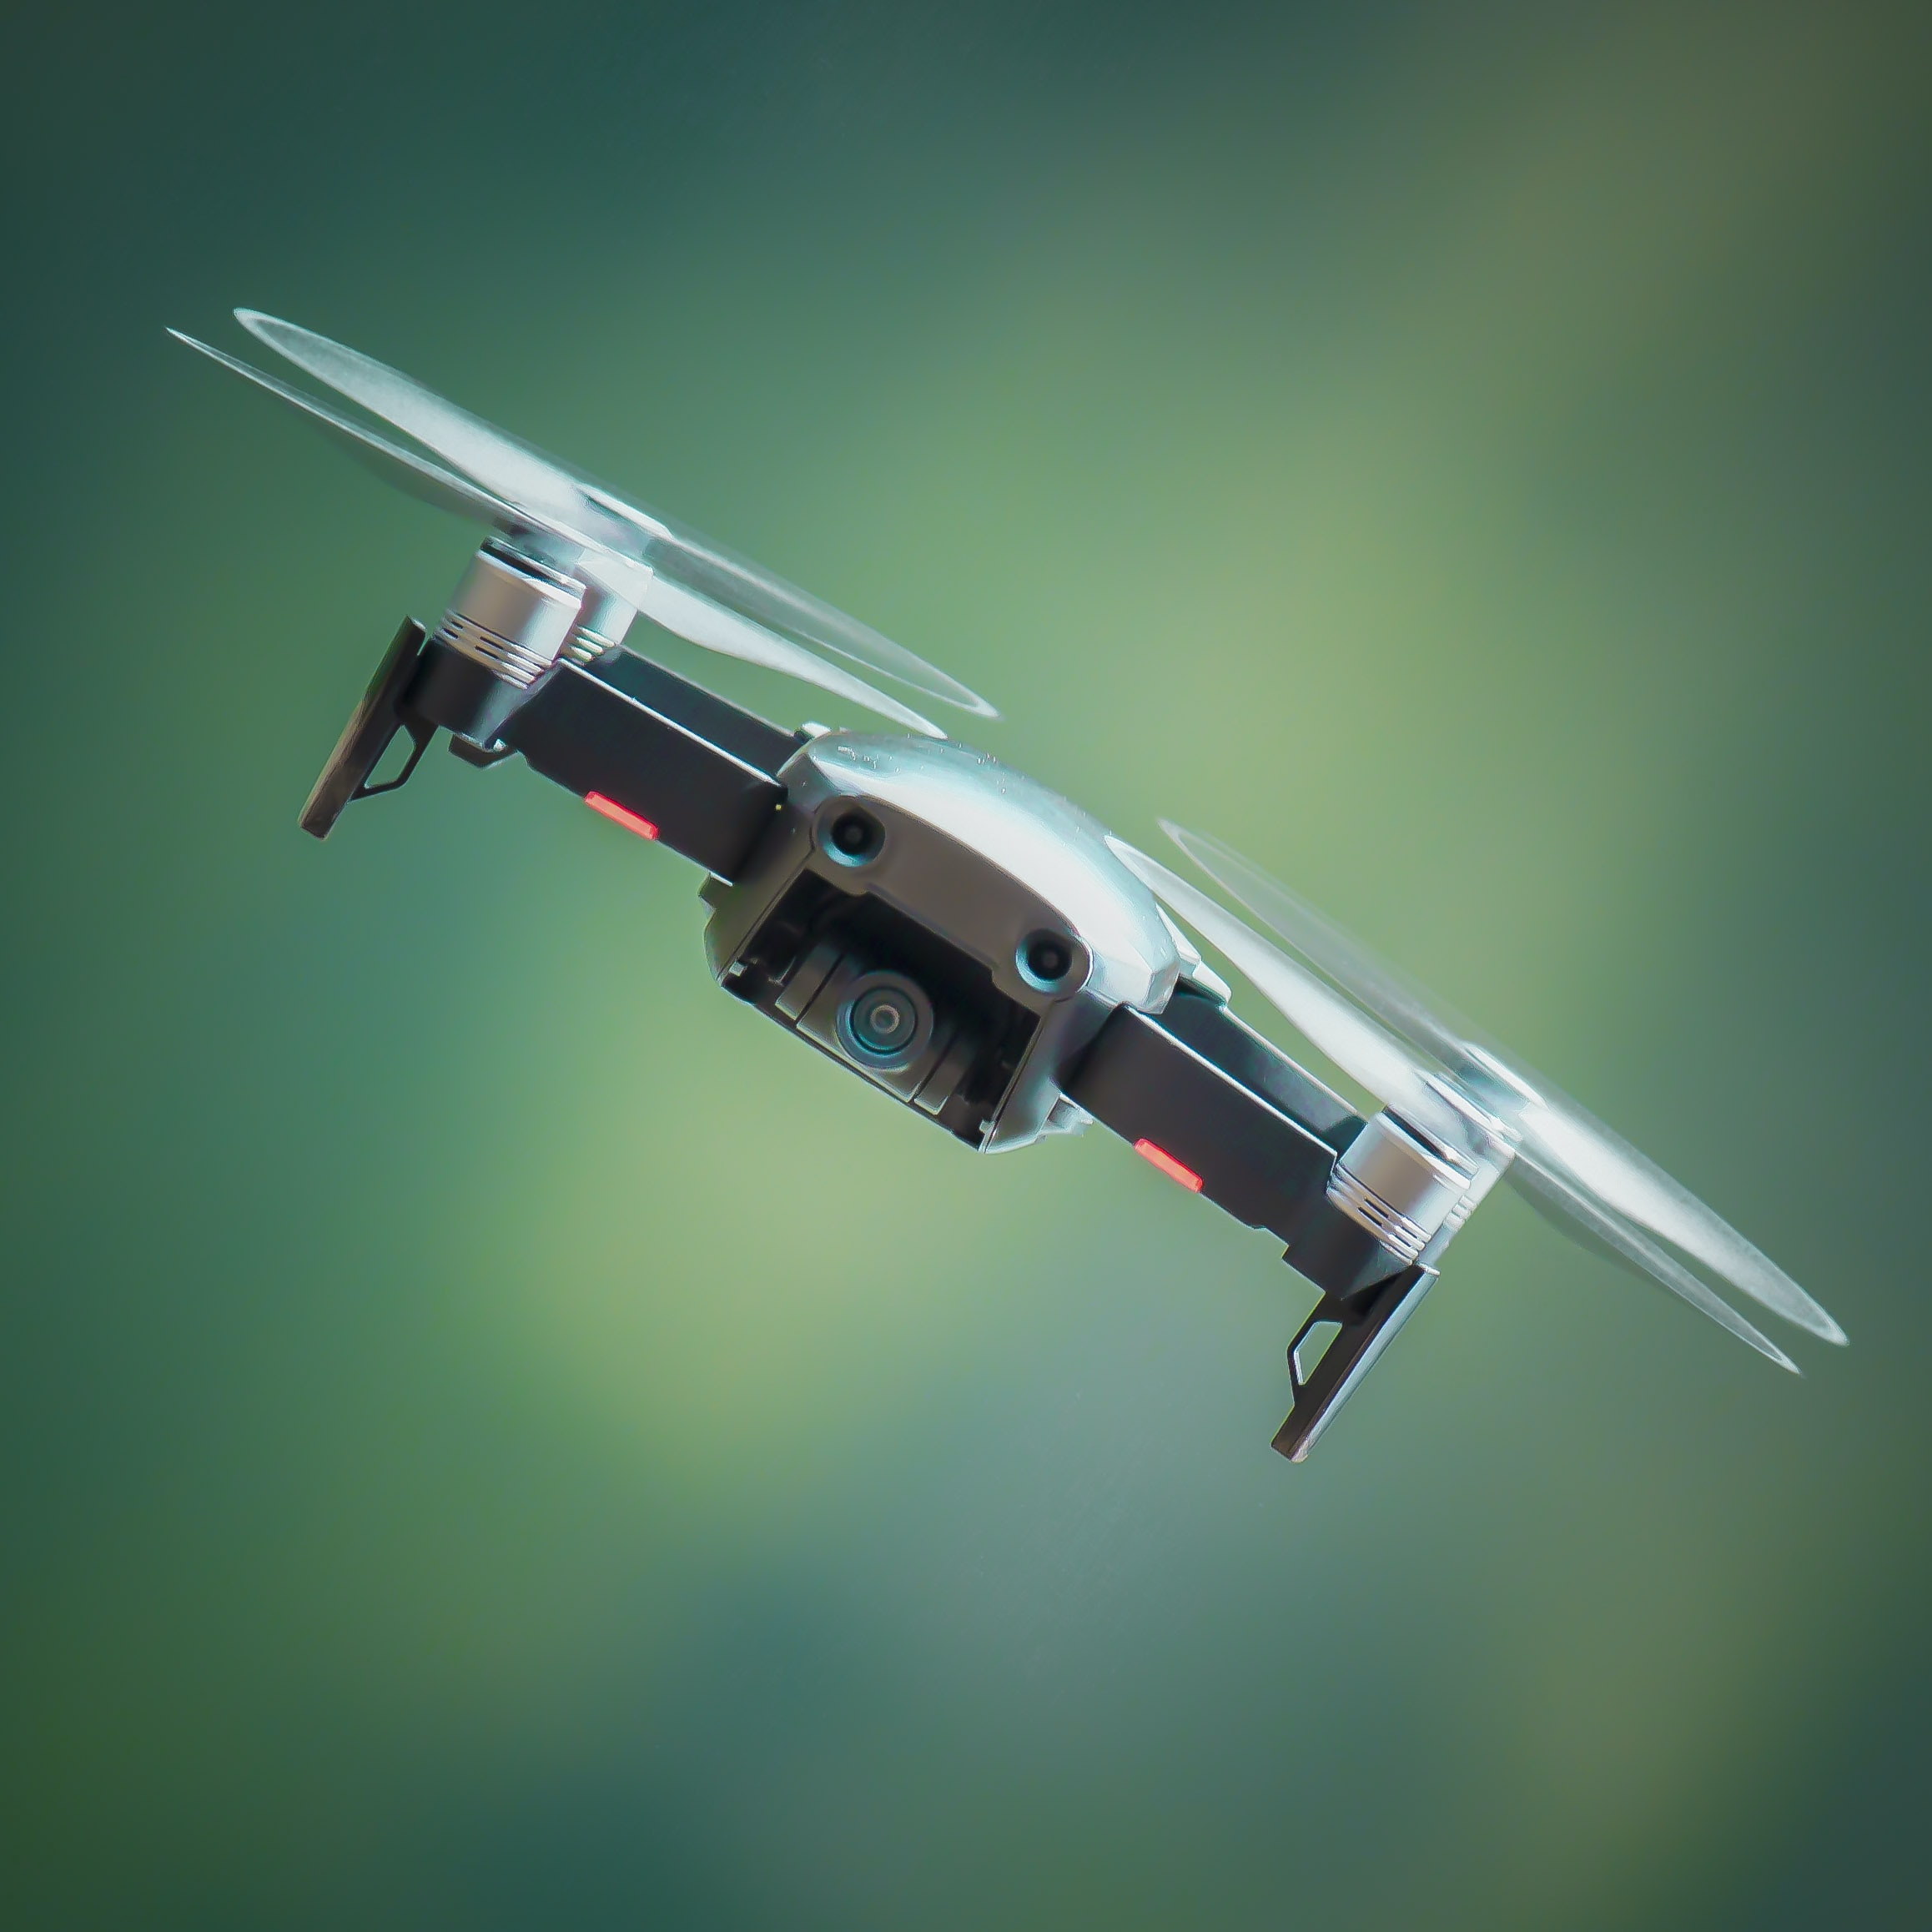 selective focus photography of gray and black quadcopter drone